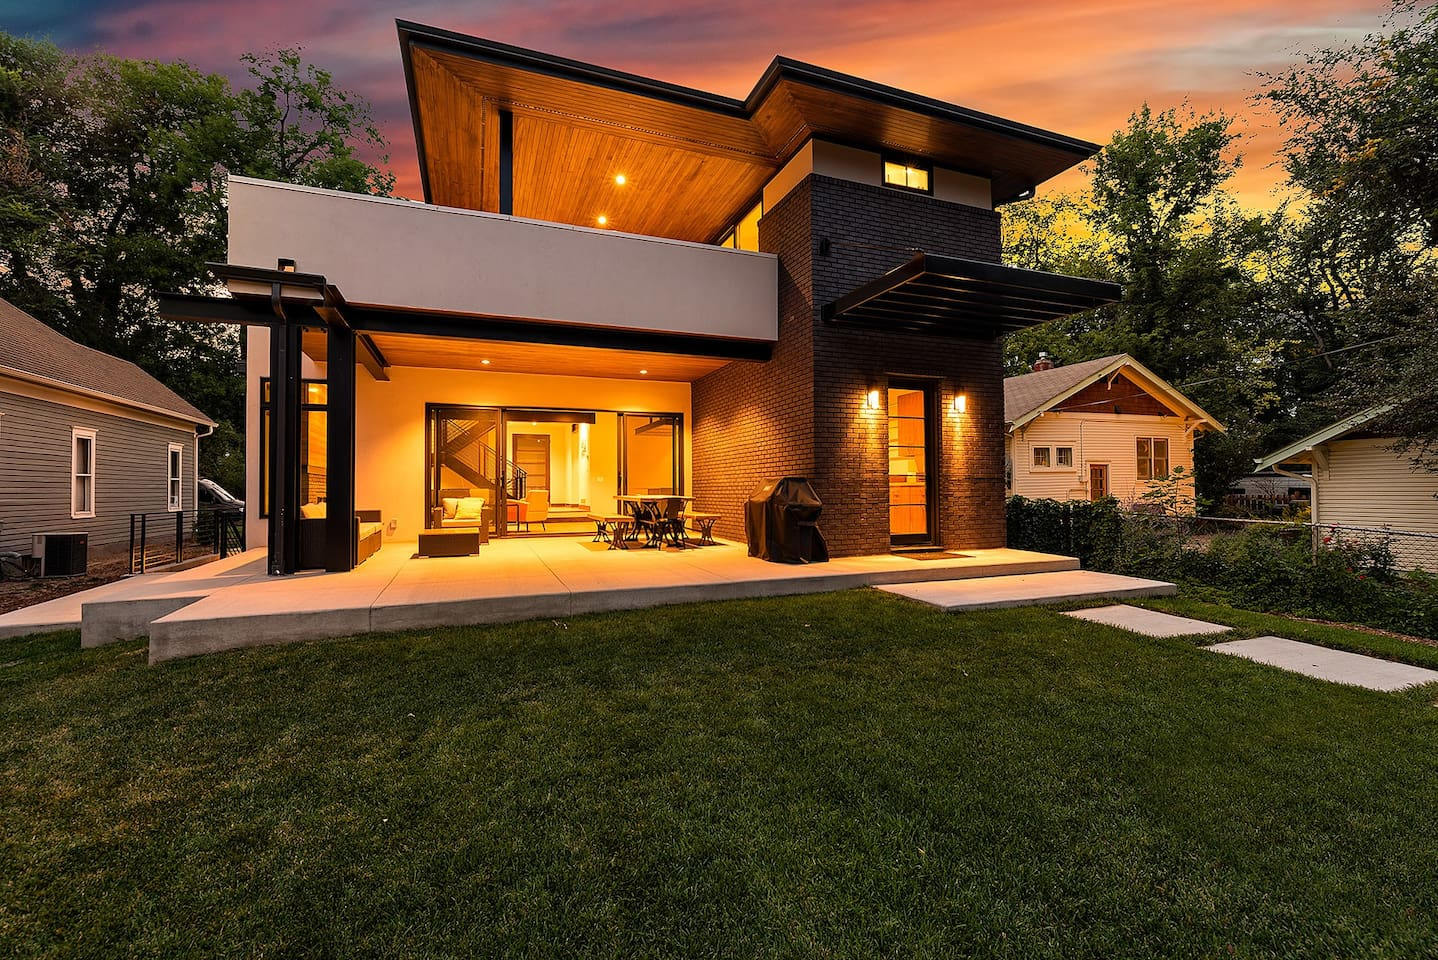 Sink in and relax in a flowing indoor-to-outdoor industrial design by an award-winning architect with floor-to-ceiling glass patio doors, fire pits, and colorful decor and art.